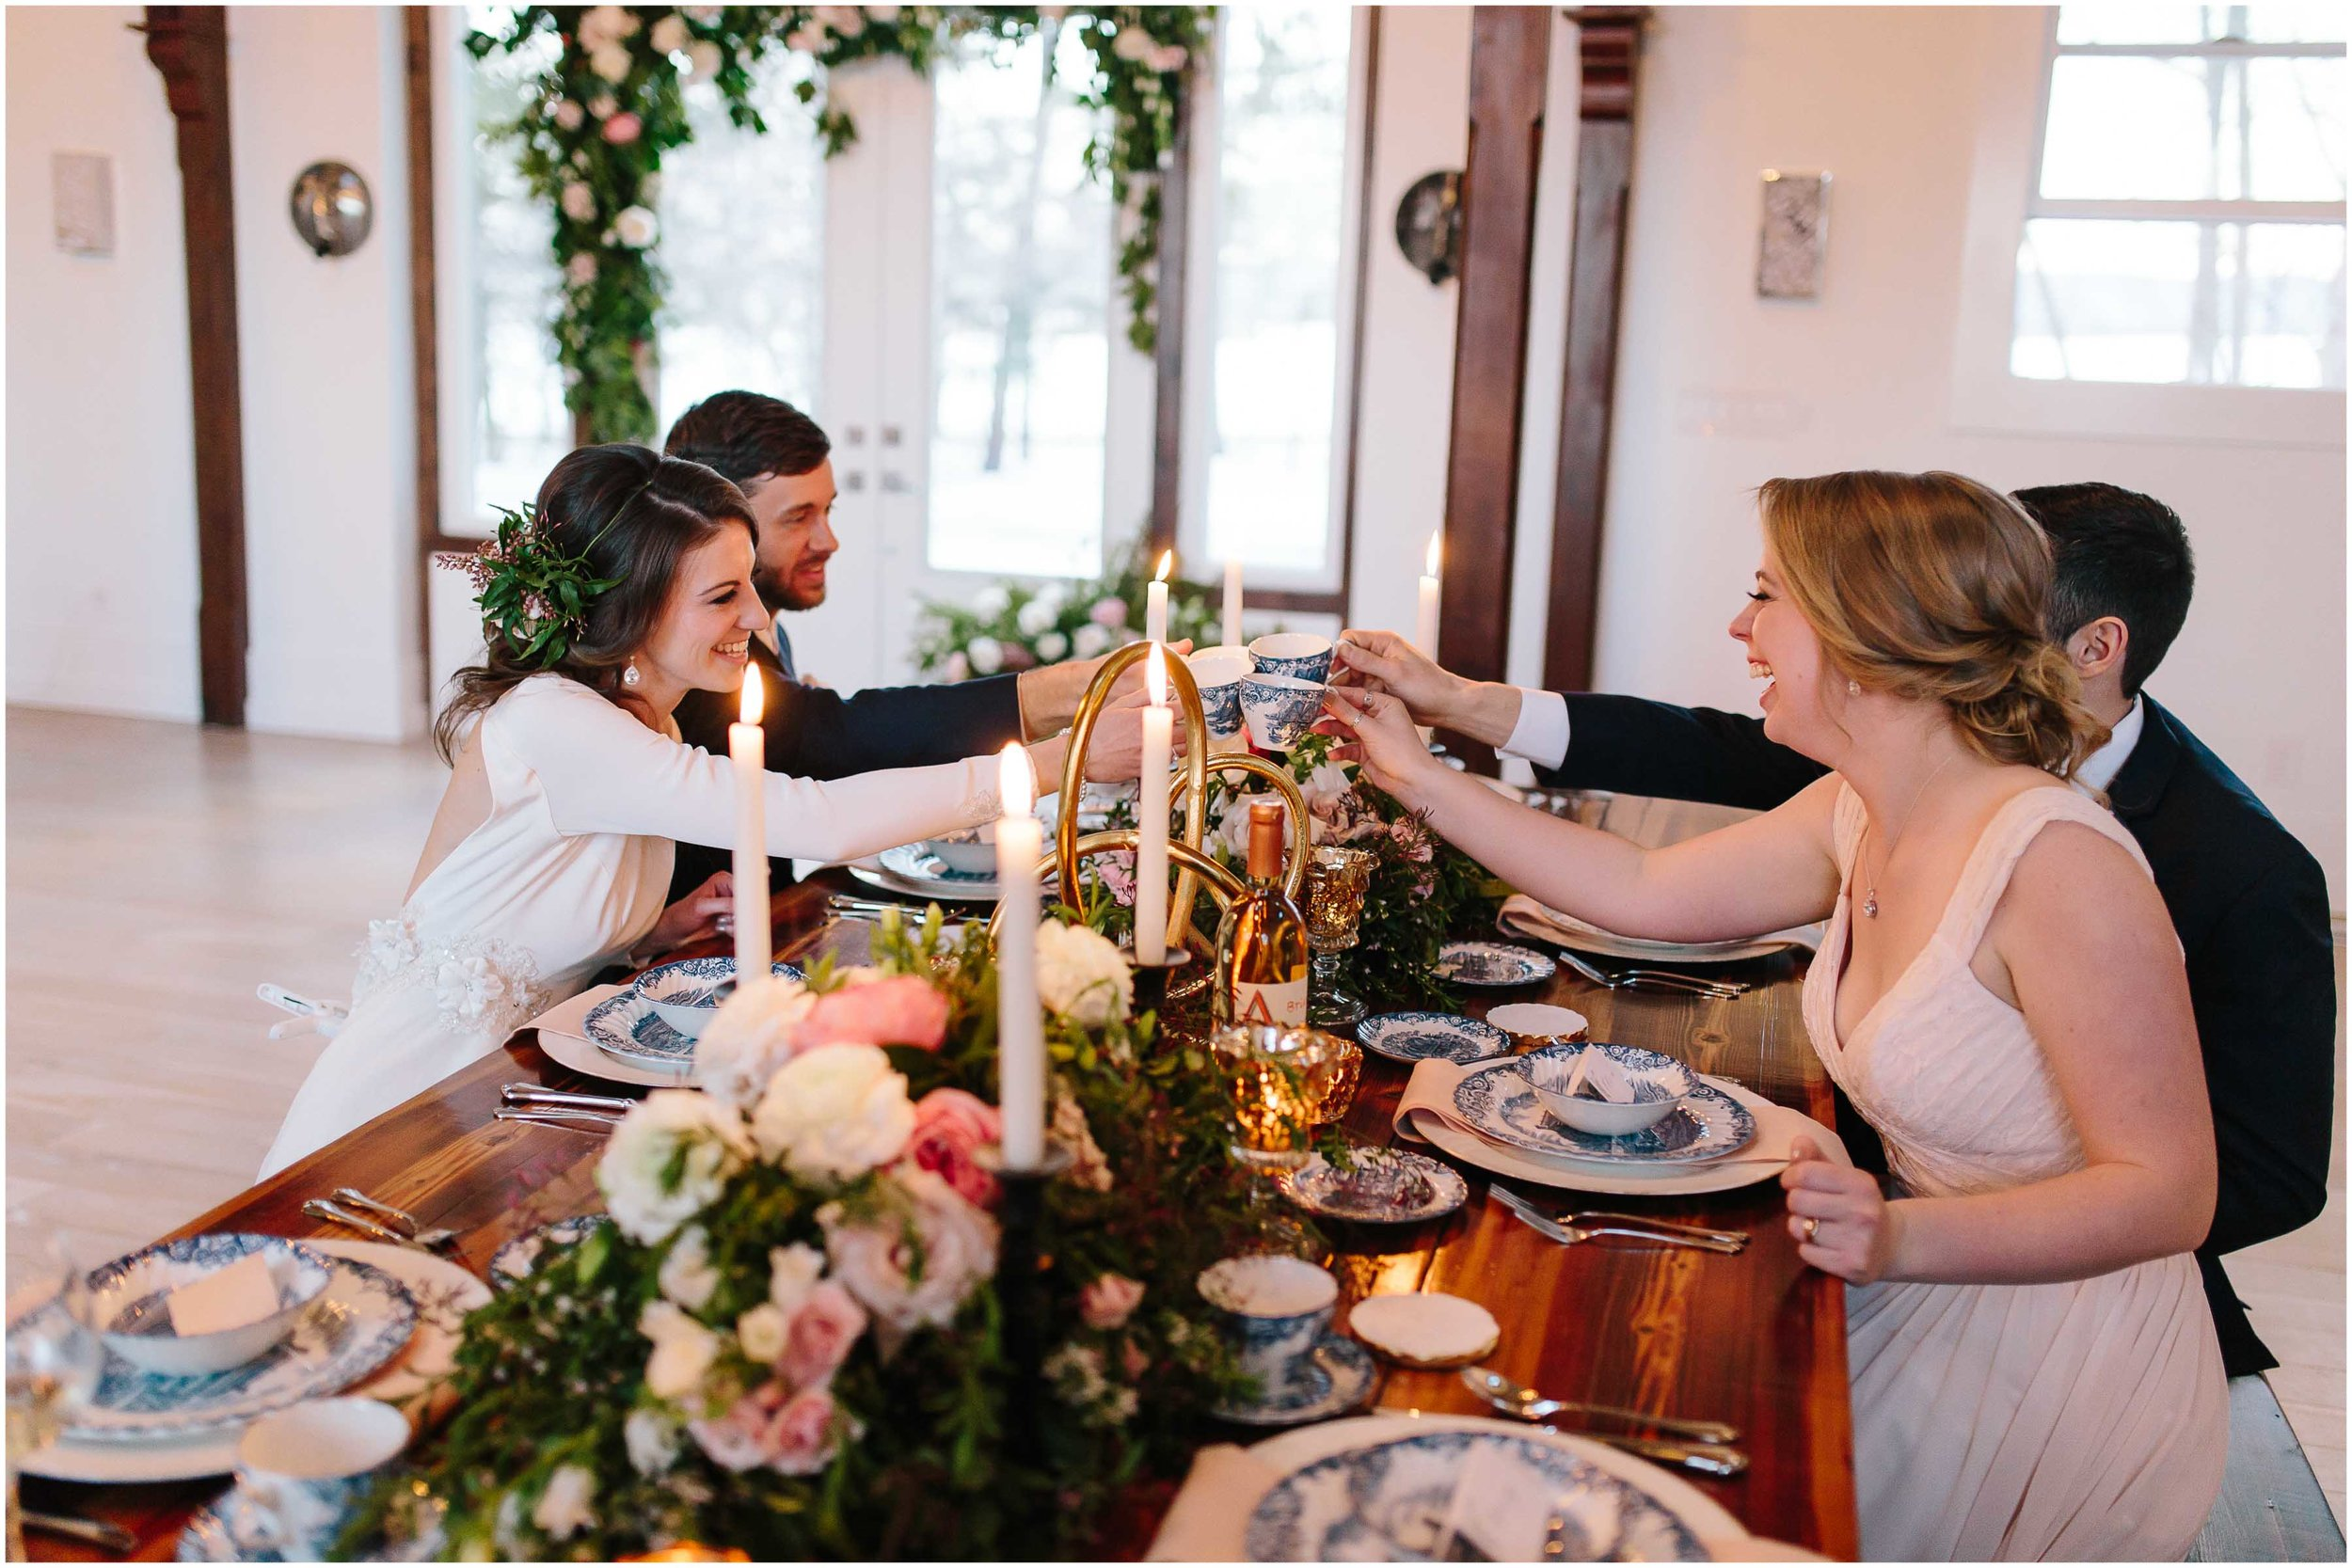 Intimate and romantic styled wedding photography in Lee, Massachusetts in the Berkshires - wedding party